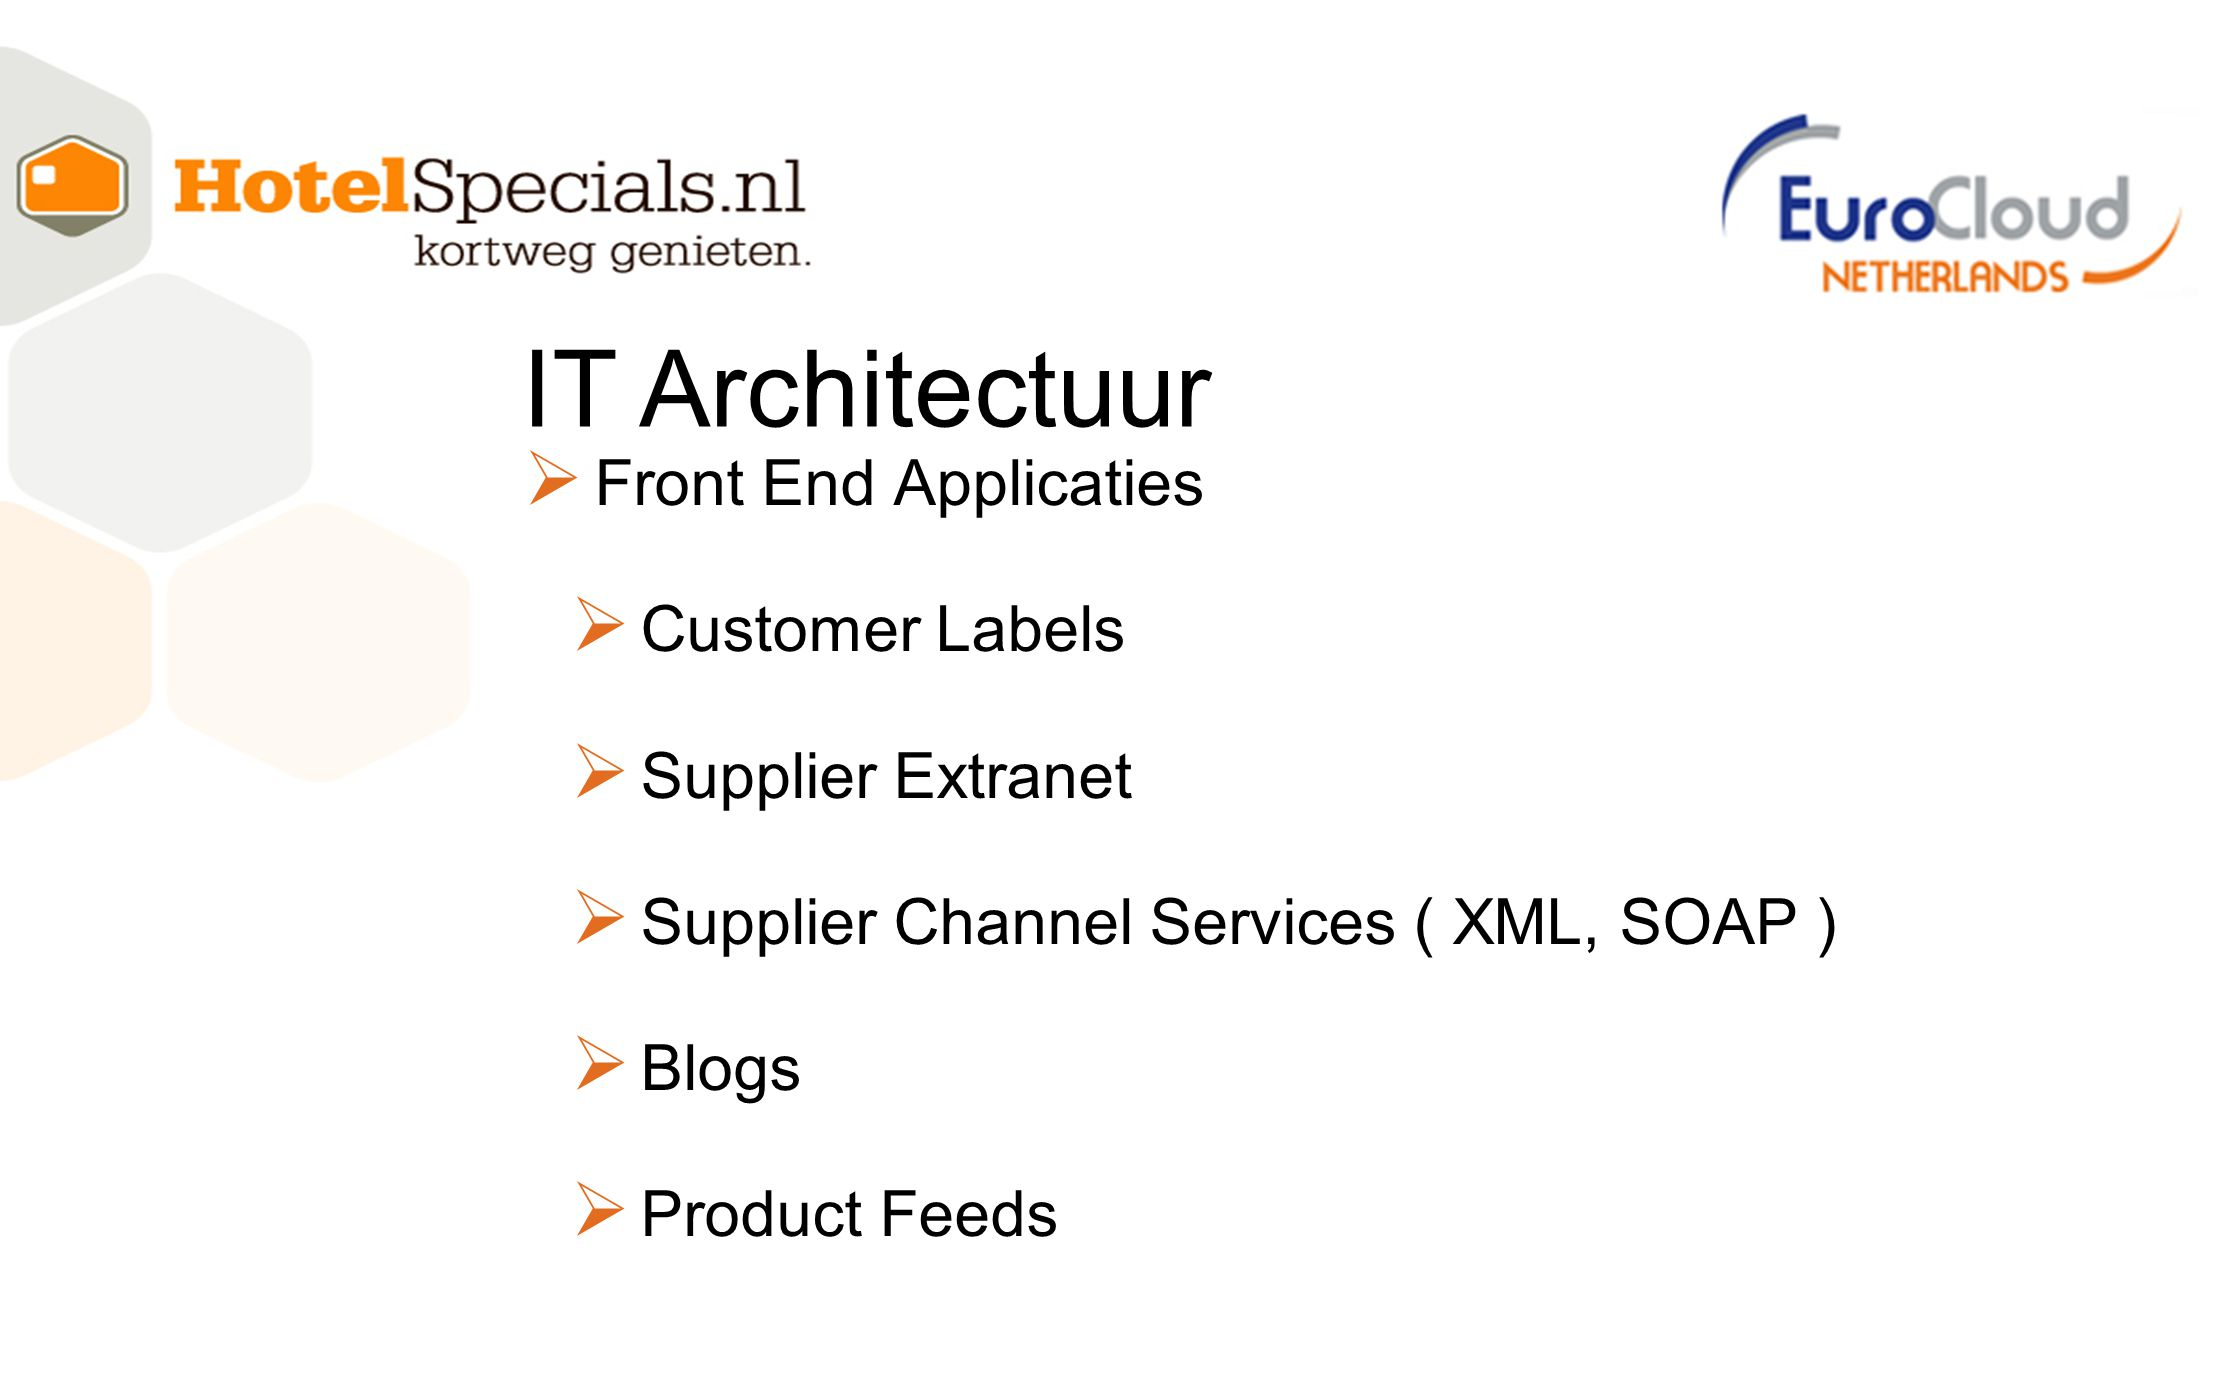  Front End Applicaties  Customer Labels  Supplier Extranet  Supplier Channel Services ( XML, SOAP )  Blogs  Product Feeds IT Architectuur